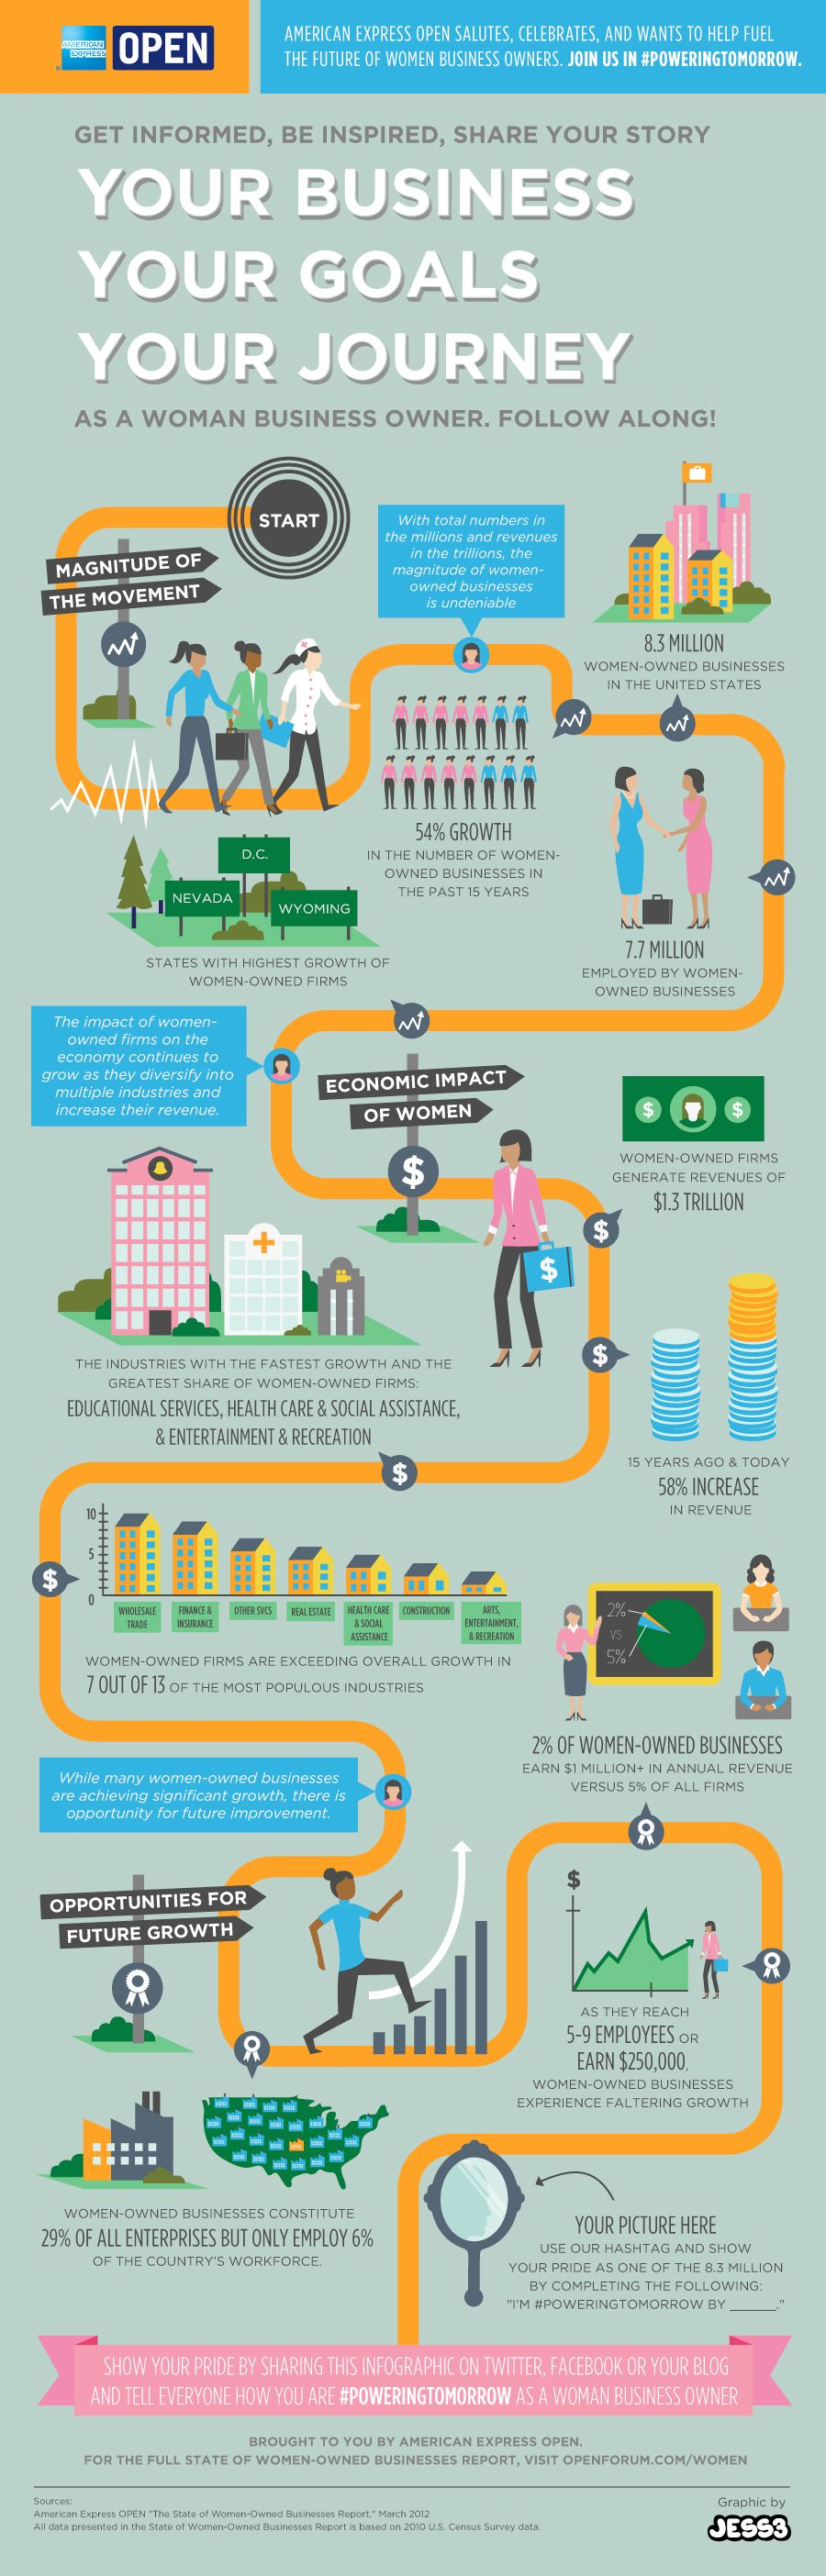 Amex OPEN Women-Owned Business Infographic